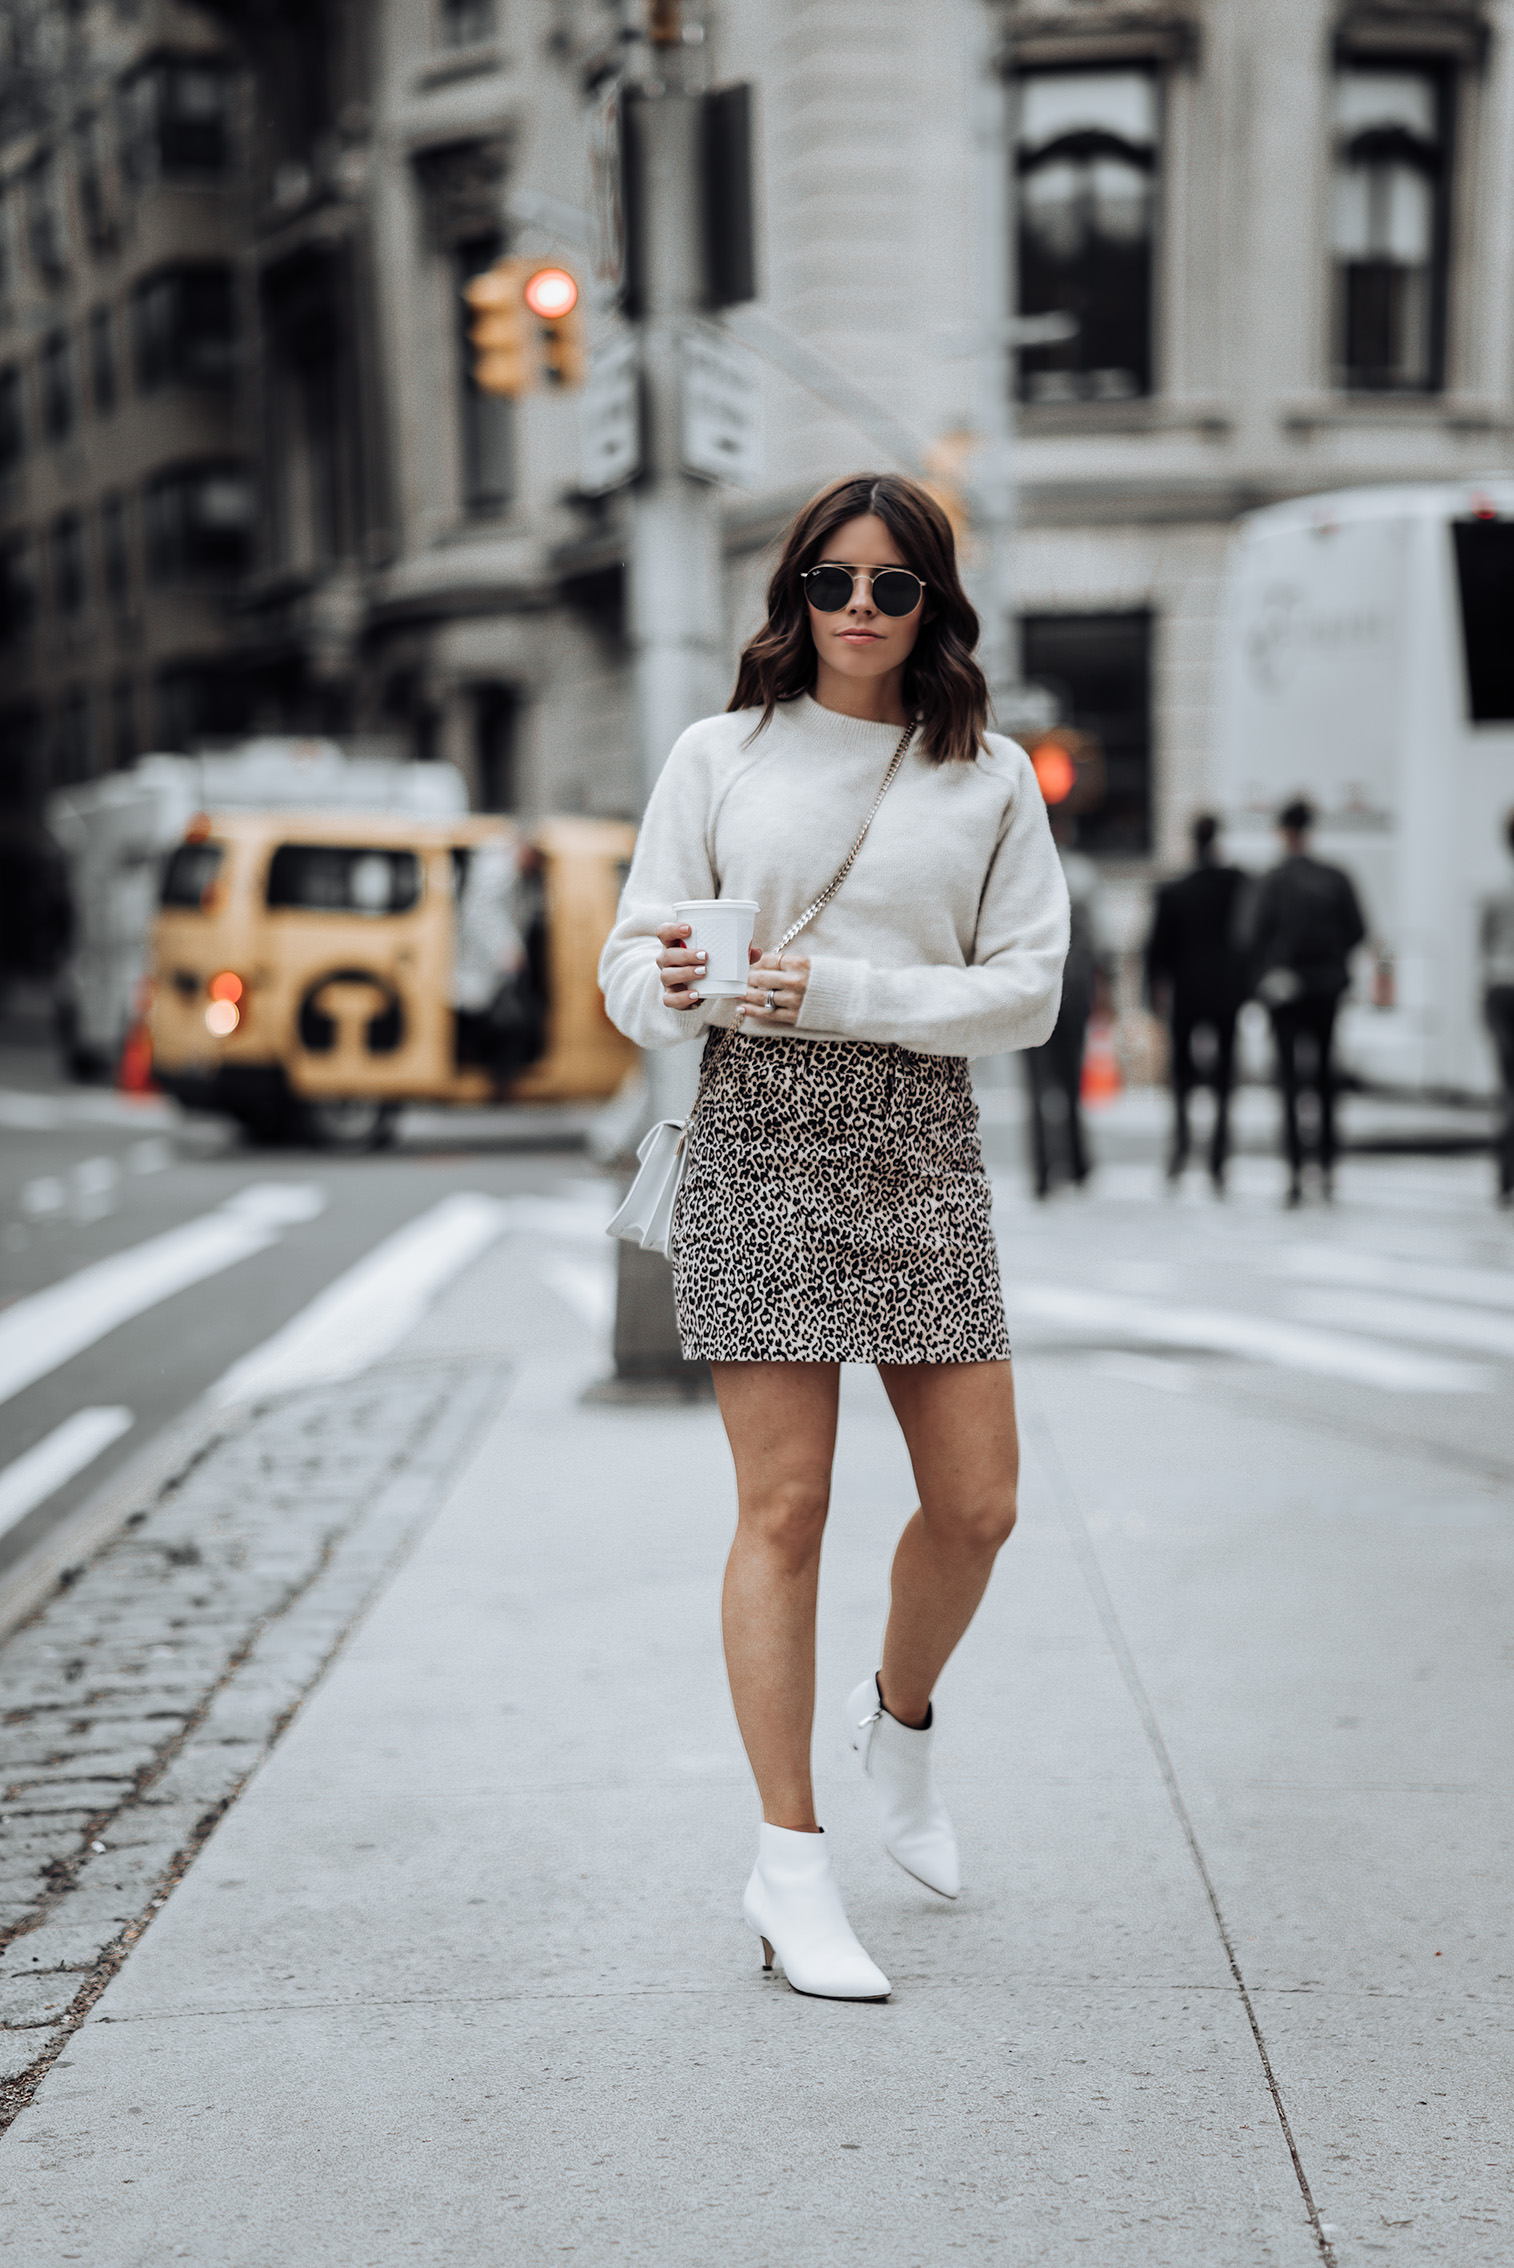 Revolve Leopard Mini Skirt | Sand color Sweater | J.W. Anderson Logo Purse | Similar white Ankle Boots here | #liketkit #ootd #style #blog #leopardskirt #streetstyle